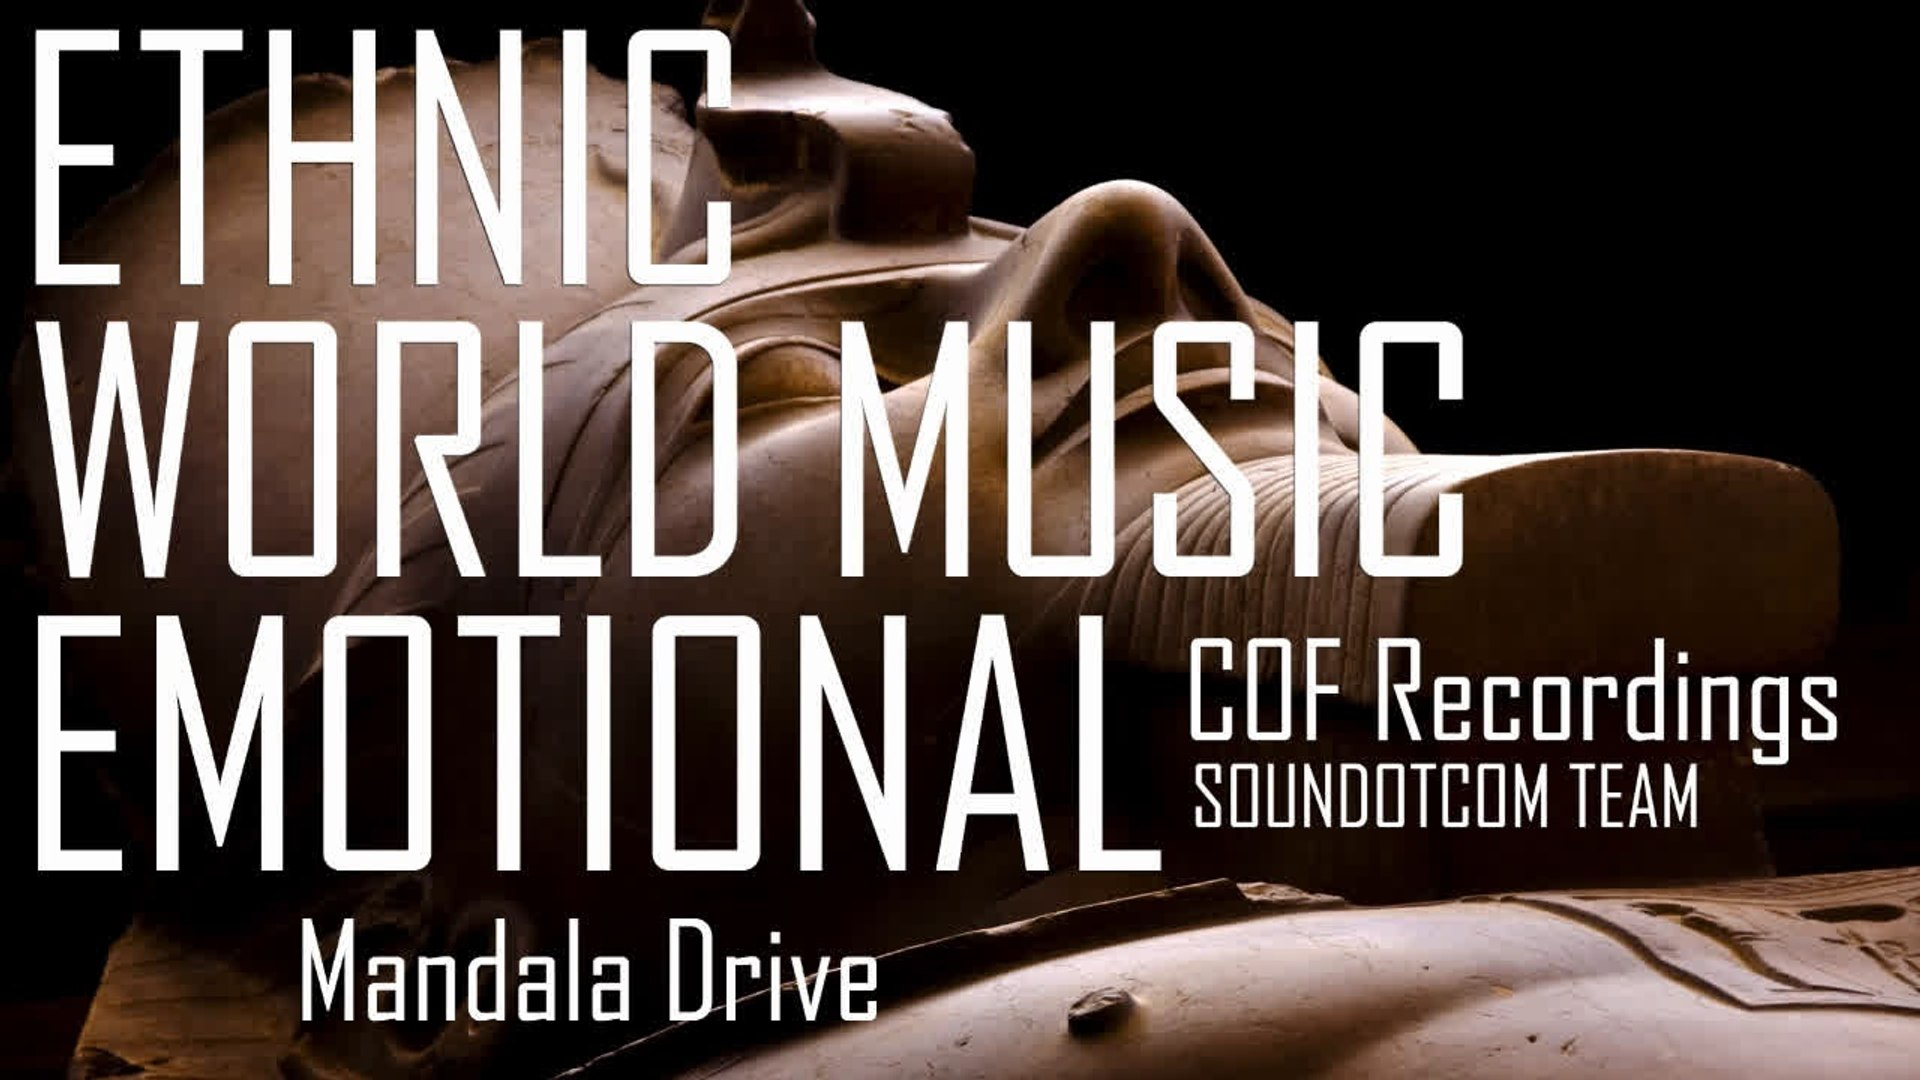 Royalty Free Music DOWNLOAD - World Music Ethnic Documentary | Mandala Drive